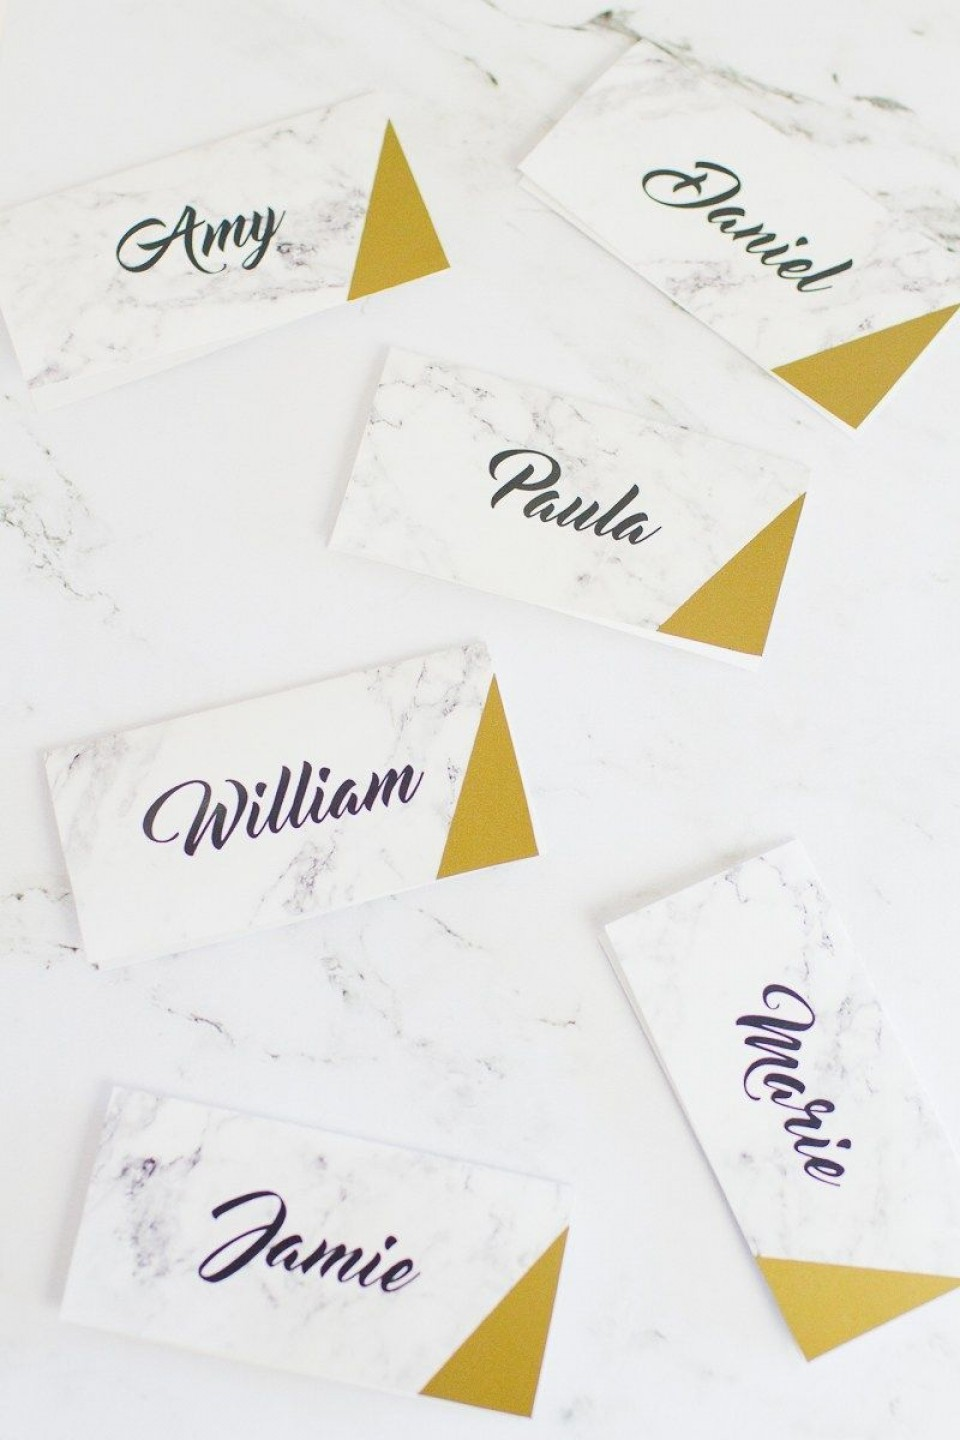 007 Stirring Name Place Card Template High Def  Free Word Publisher Wedding960